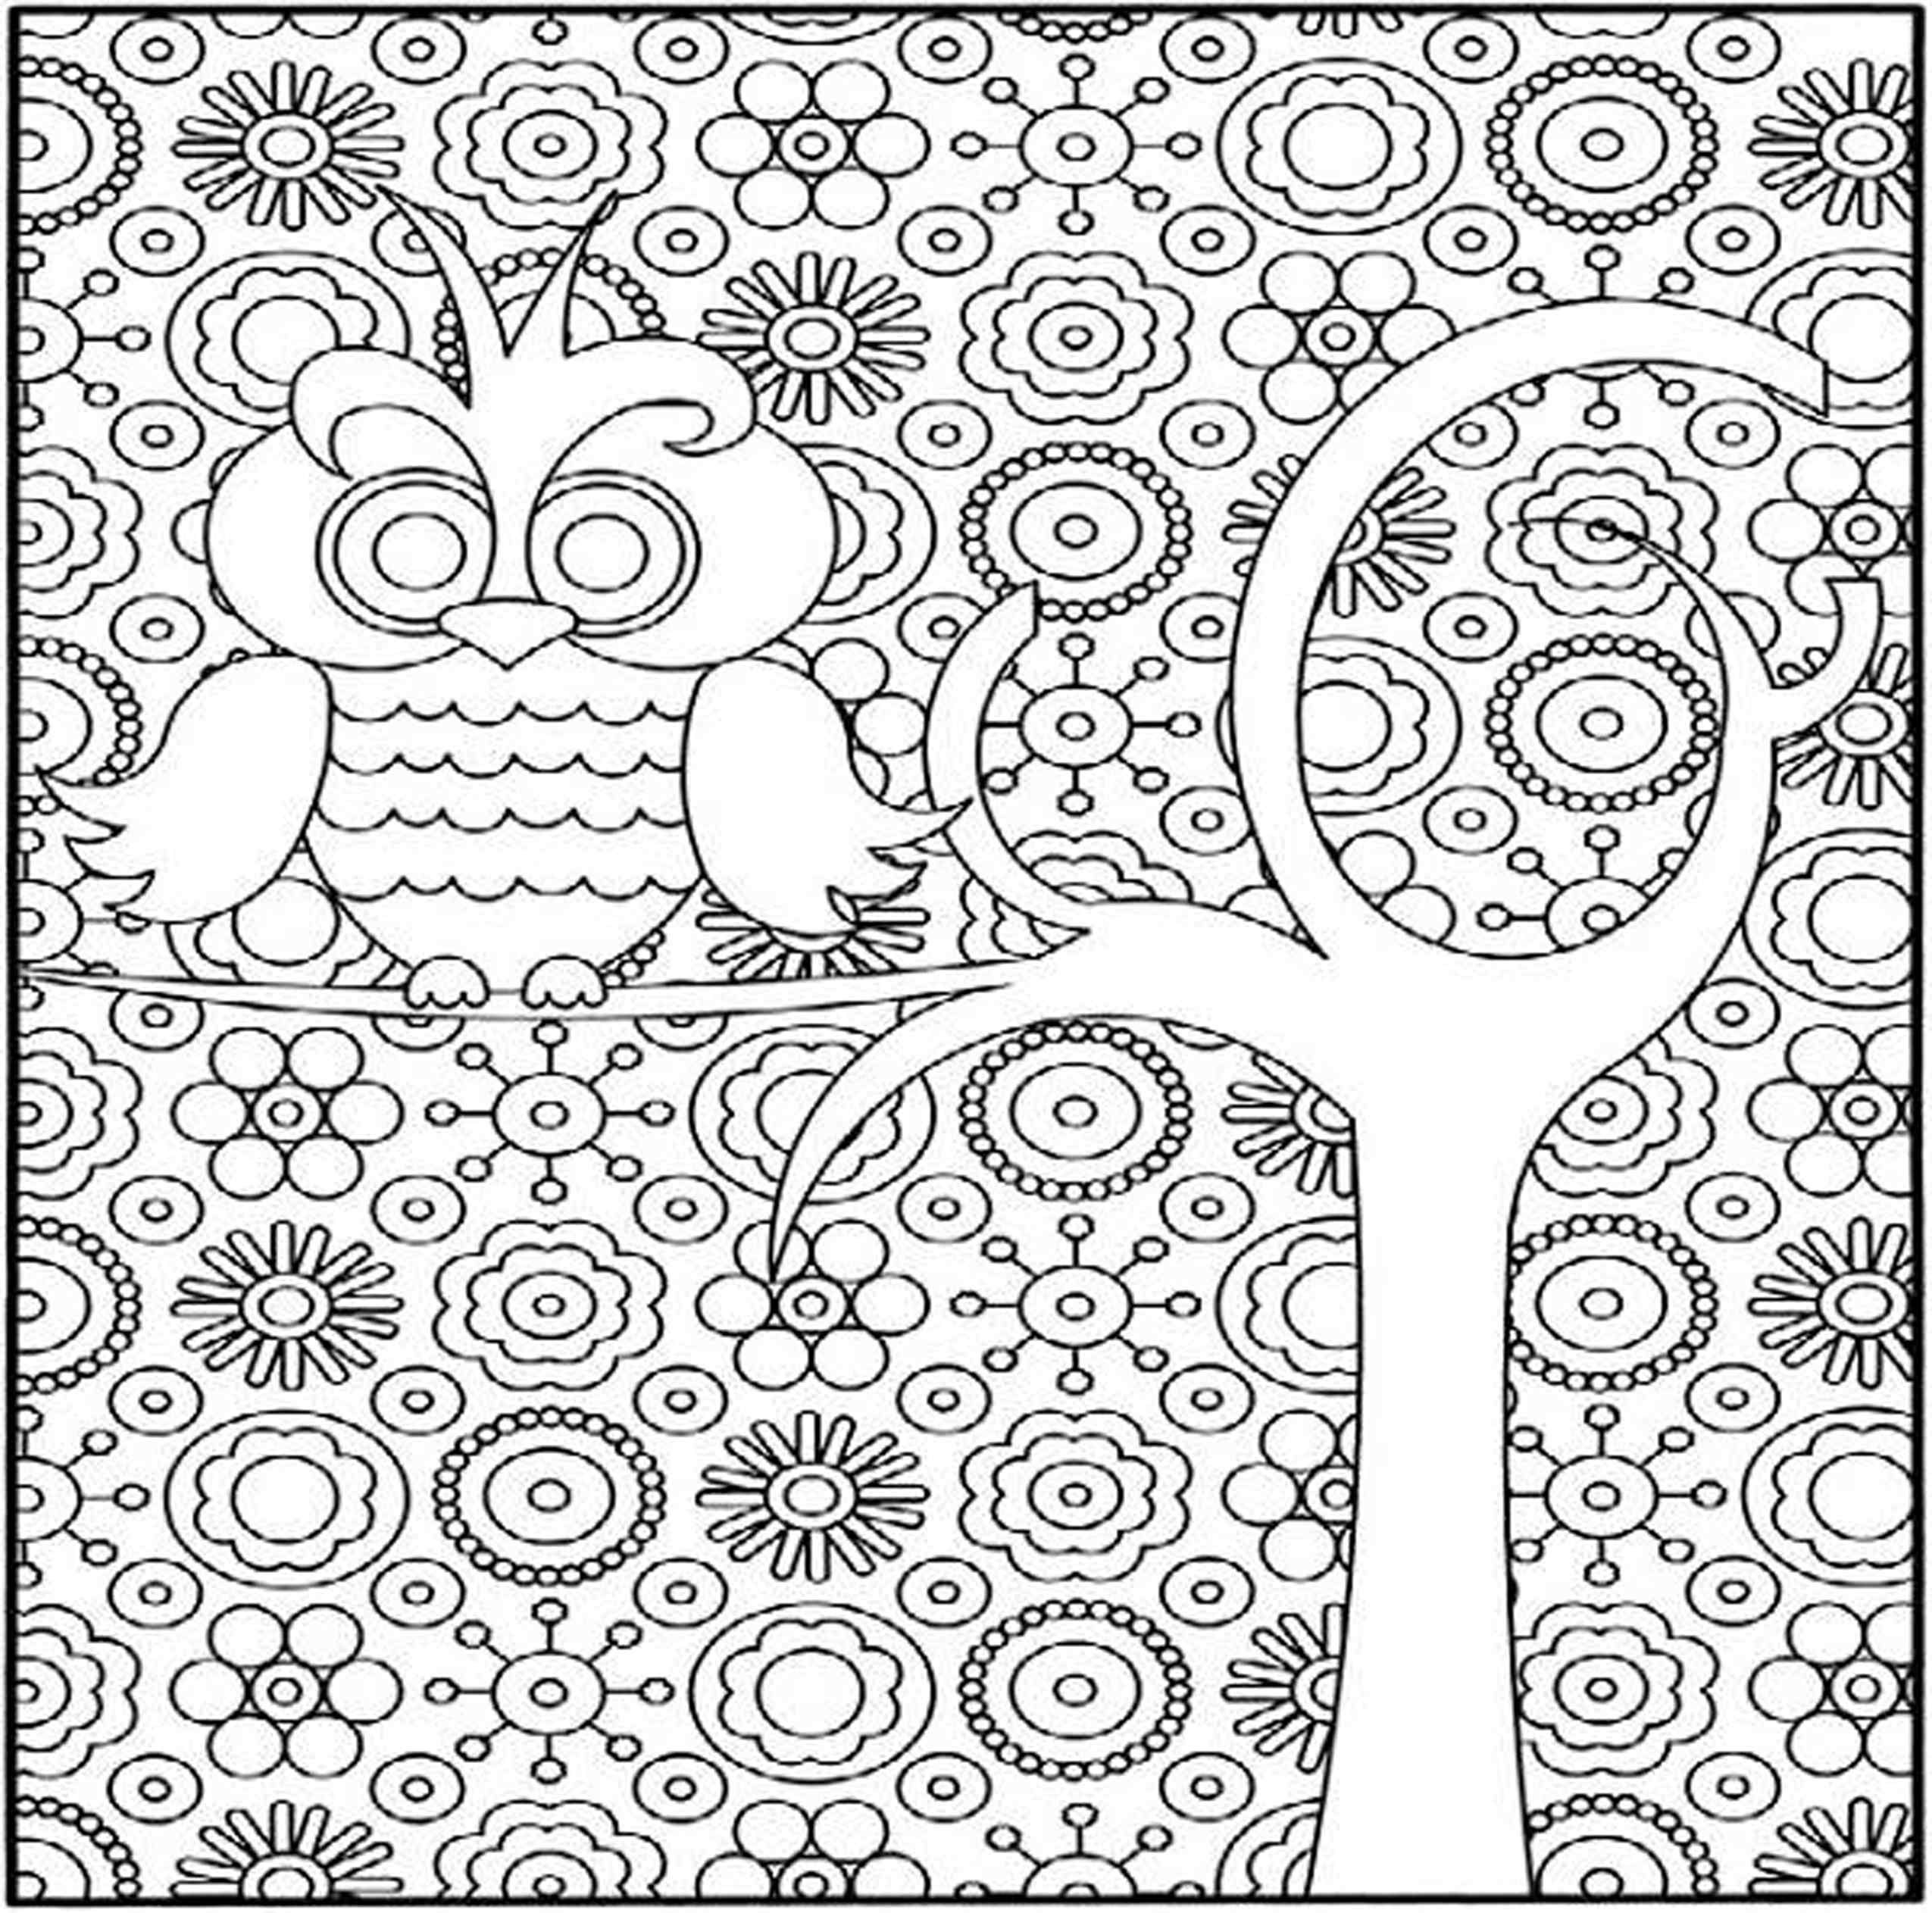 Detailed Coloring Pages Of Girls  Detailed Coloring Pages For Girls at GetColorings